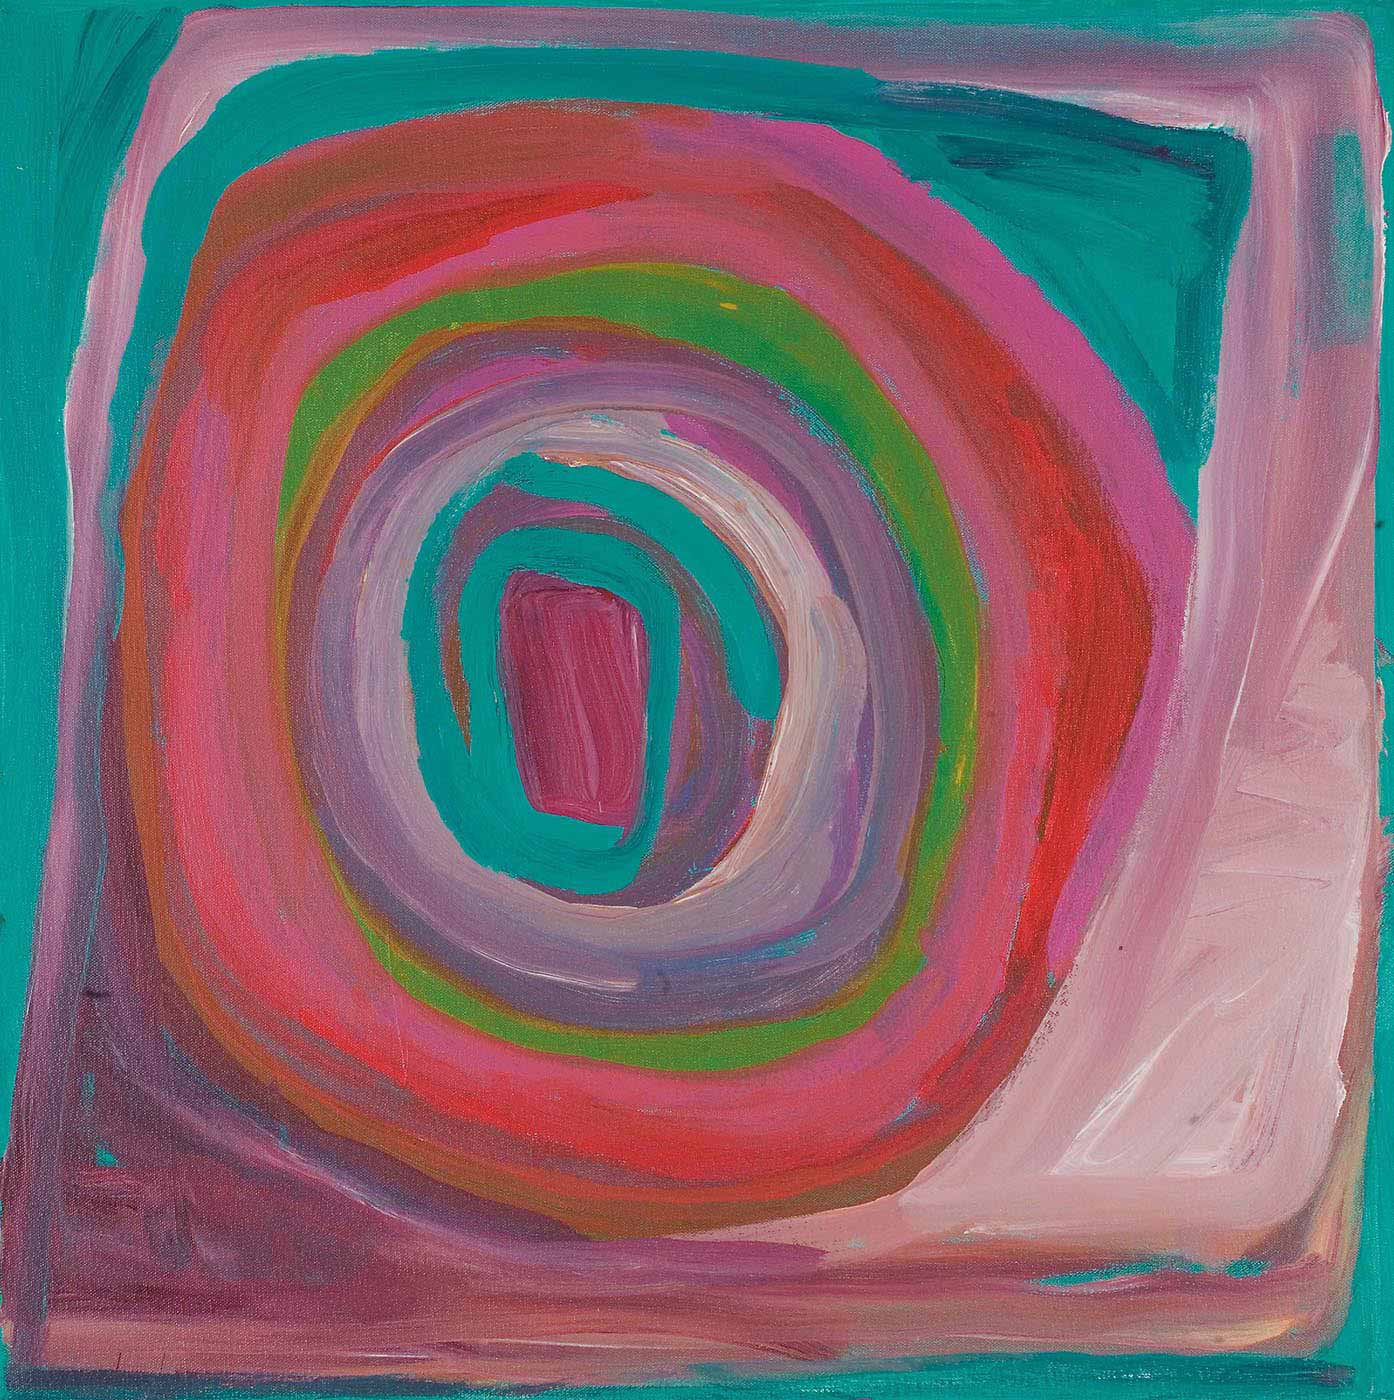 A multicoloured concentric circle painted within a square border on canvas. Colours include turquoise, pink, red, green, blue, and shades of purple. - click to view larger image